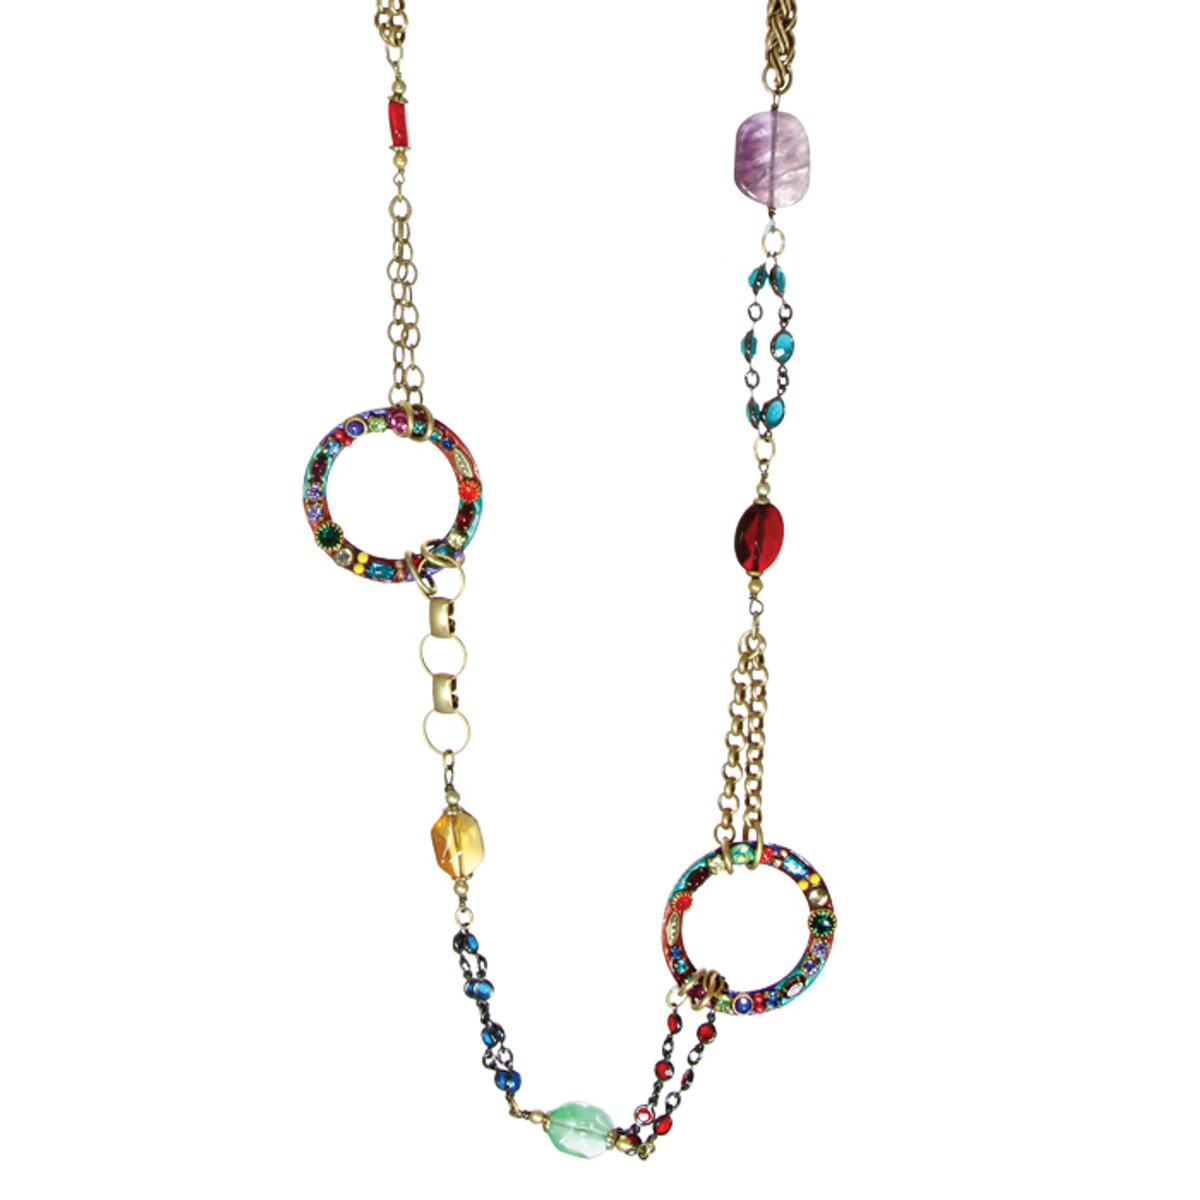 Michal Golan Necklace - Multibright Double Hoops With Mixed Bead Chain